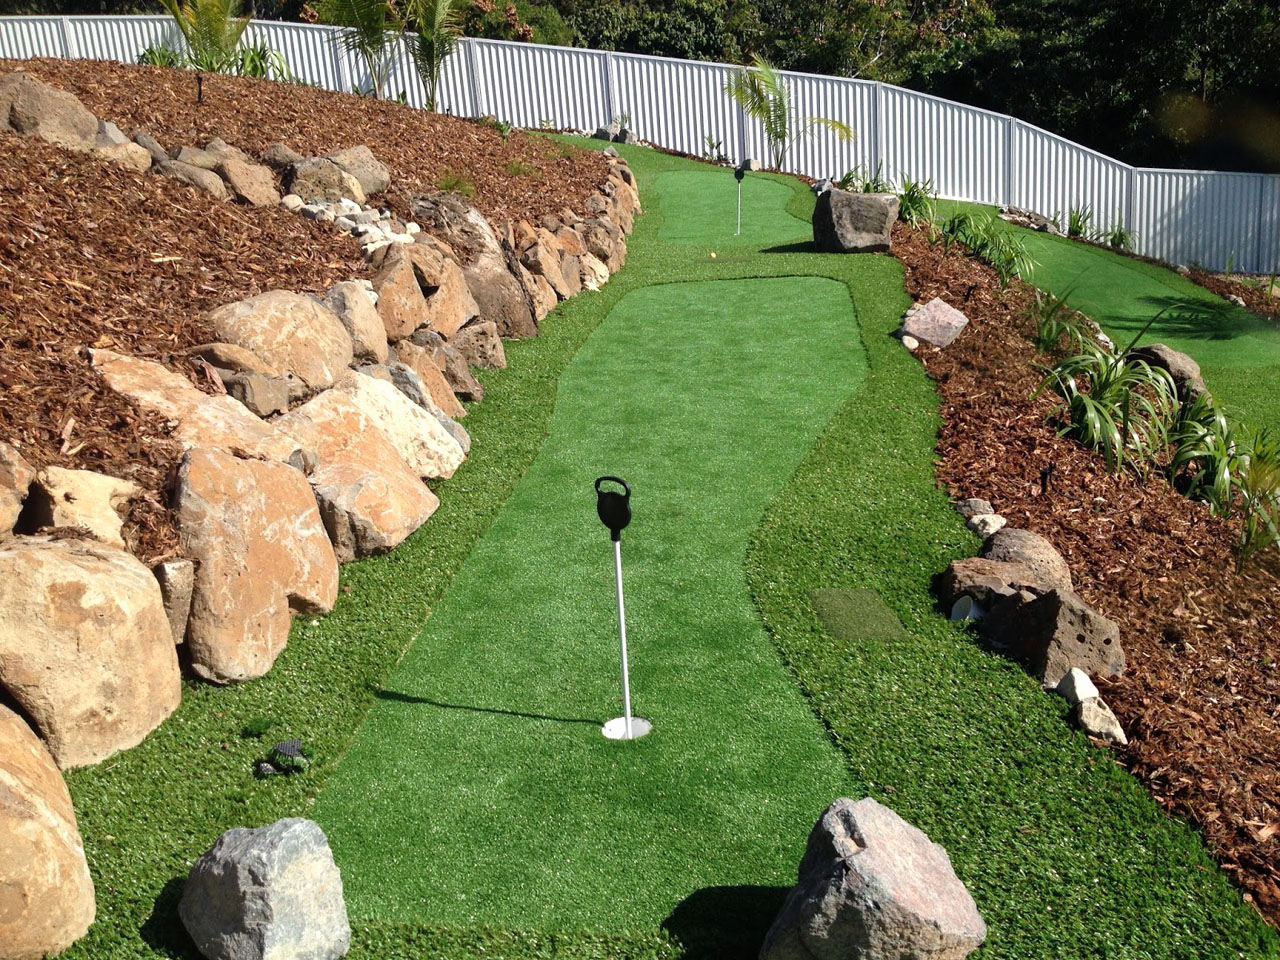 Backyard Landscaping Sloped Yard Landscaping A Hilly Backyard pertaining to 13 Genius Ways How to Build Landscaping A Hilly Backyard